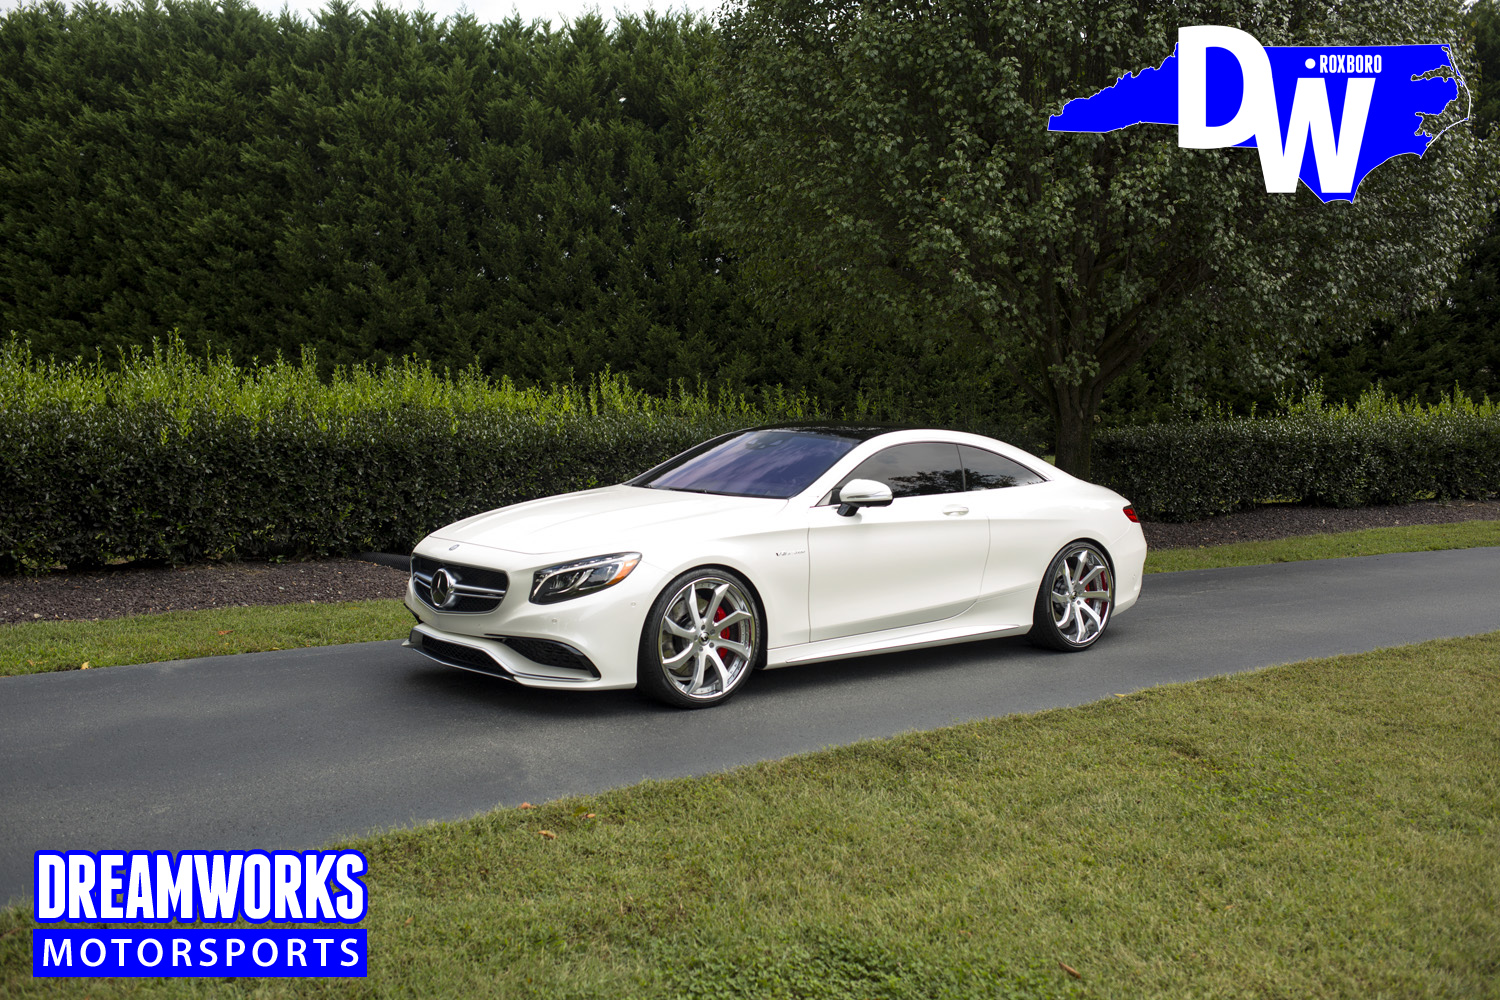 Mercedes-S-Coupe-by-Dreamworks-Motorsports-2.jpg